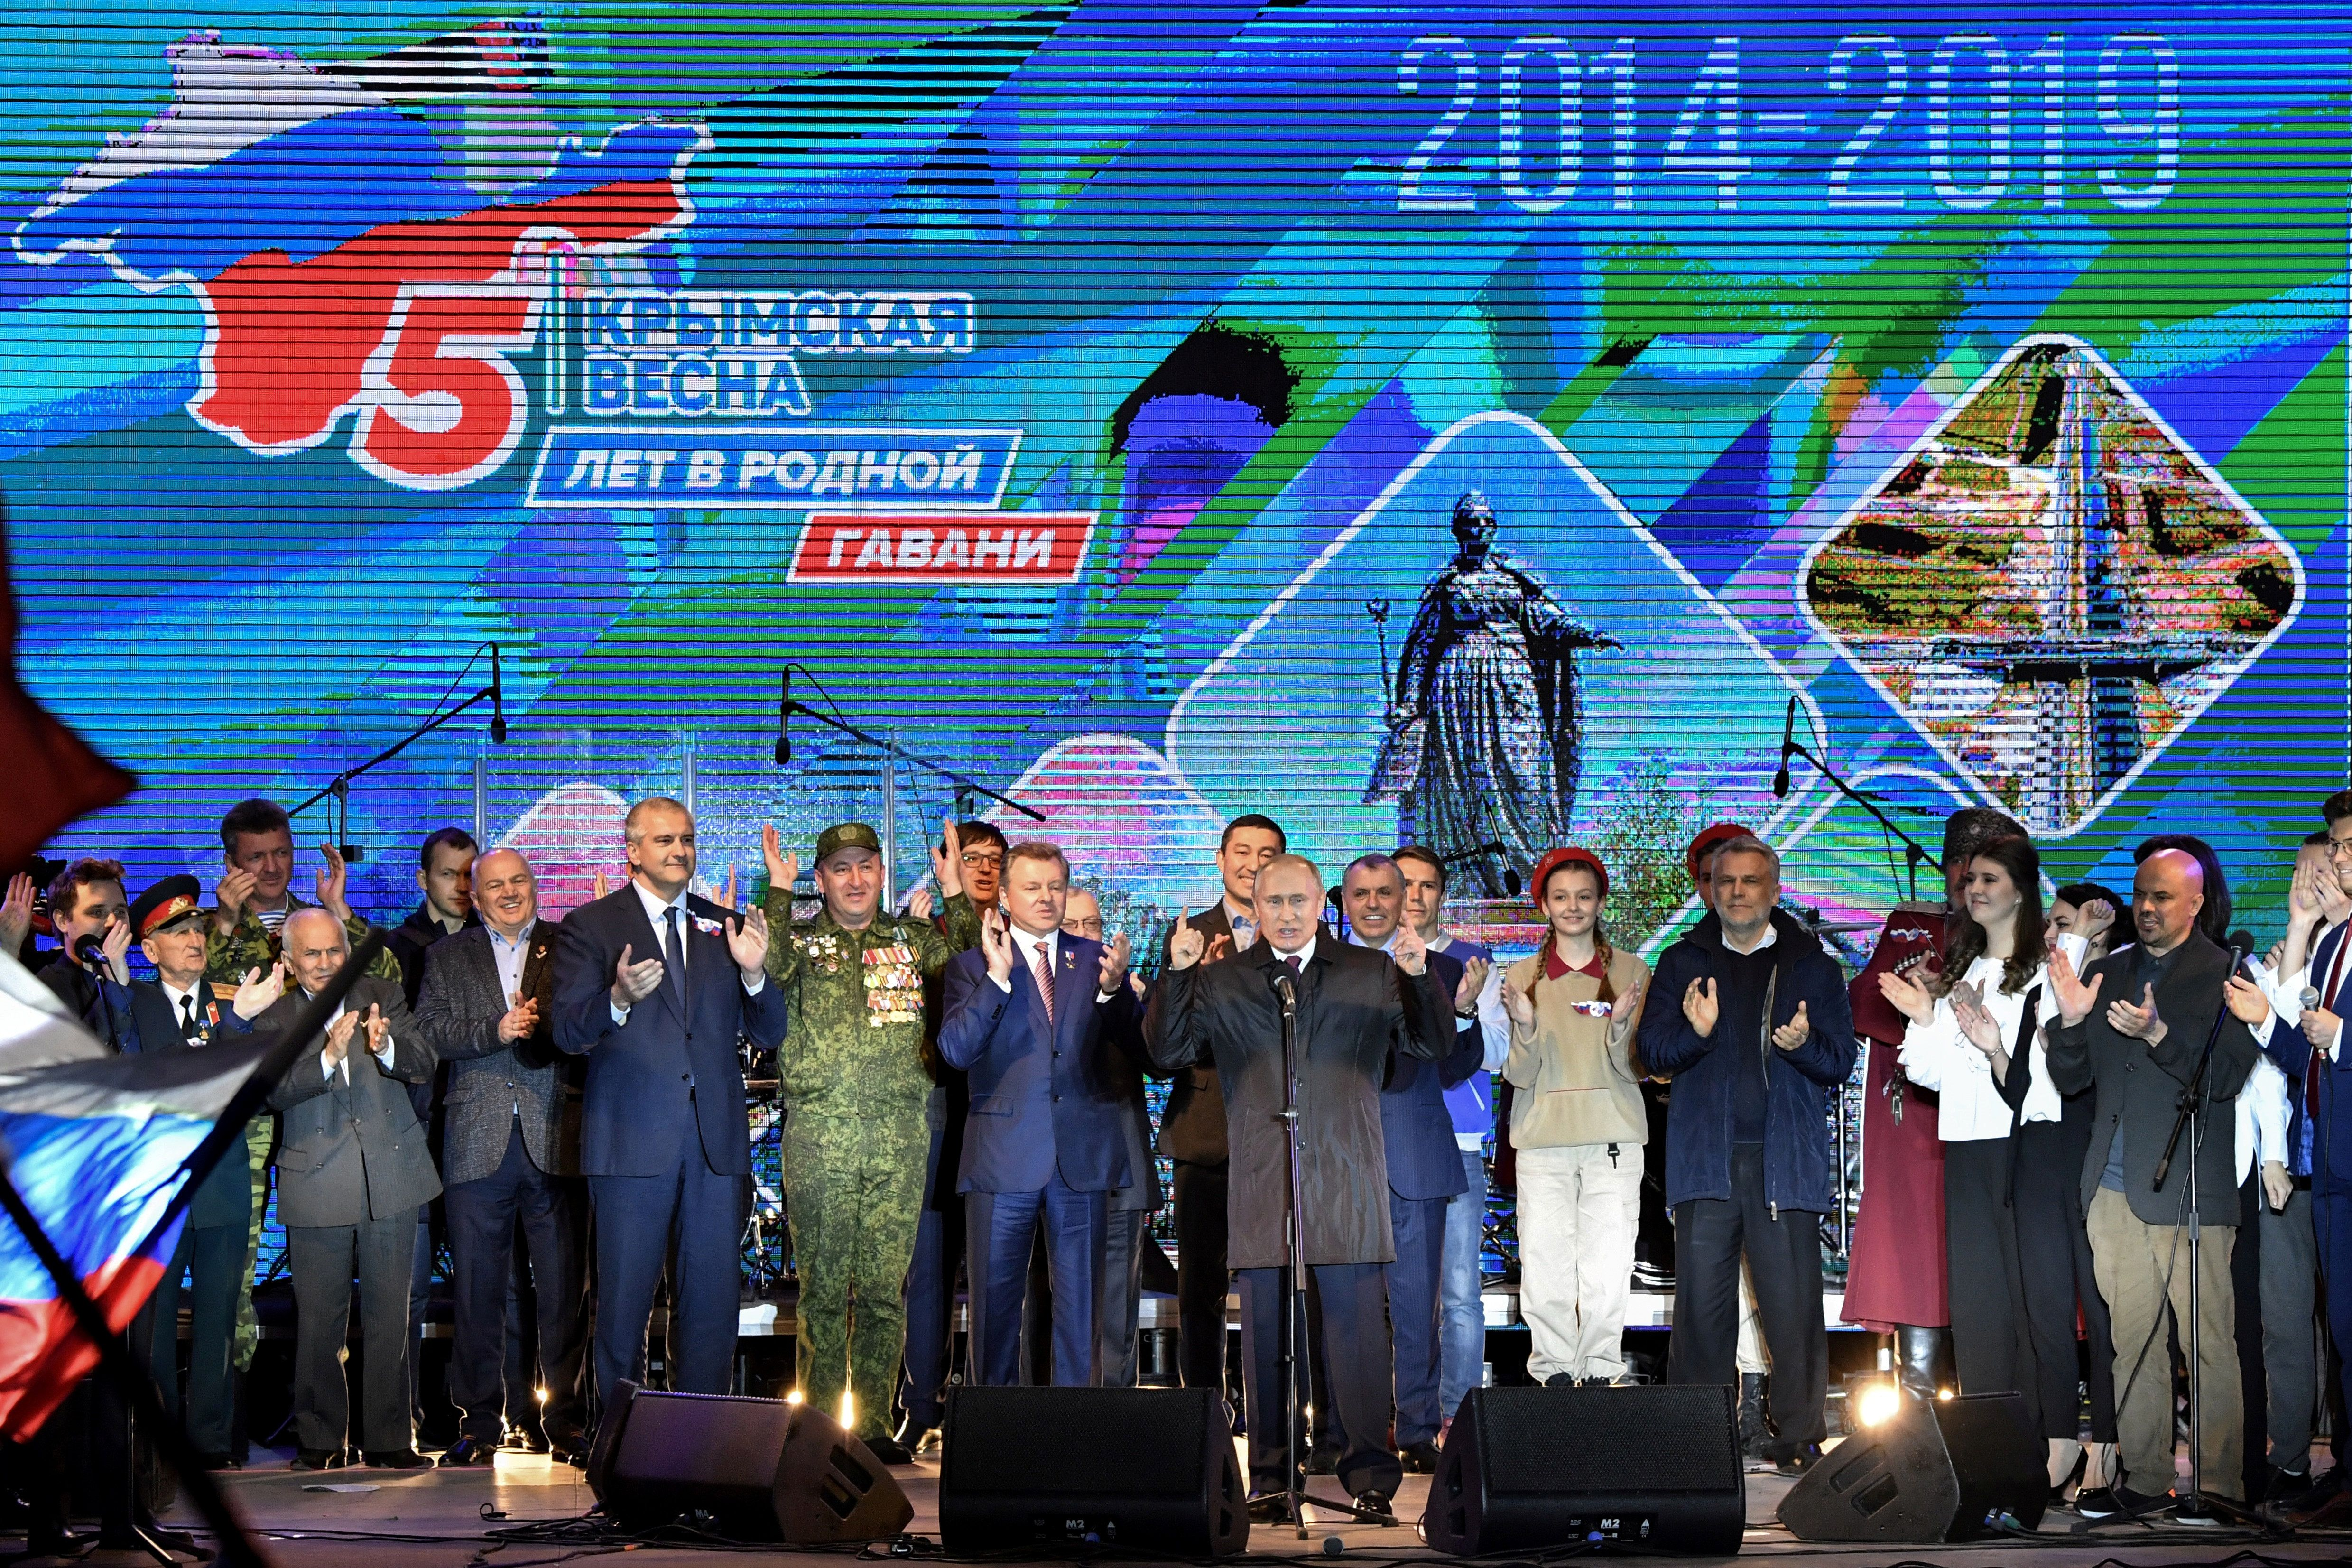 TWO VISITS FROM THE EAST: PUTIN AND XI